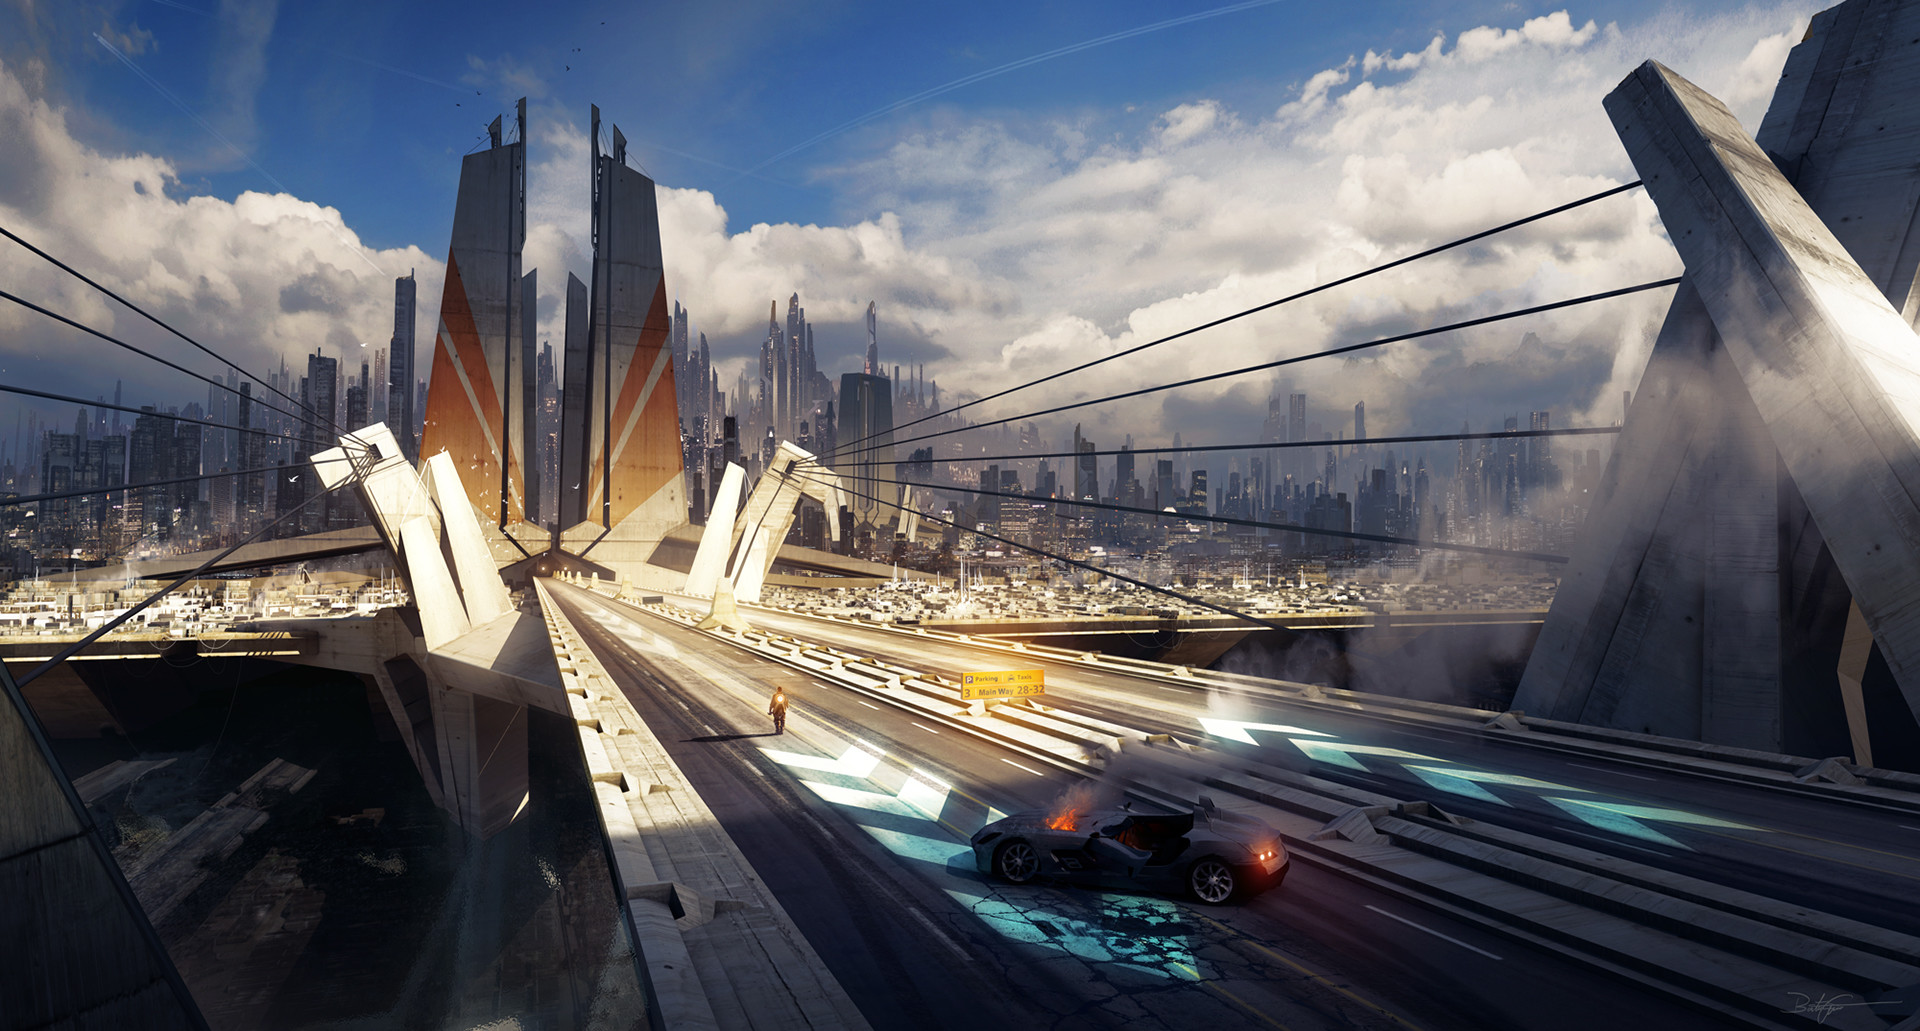 Bastien grivet alone on the rox bastien grivet